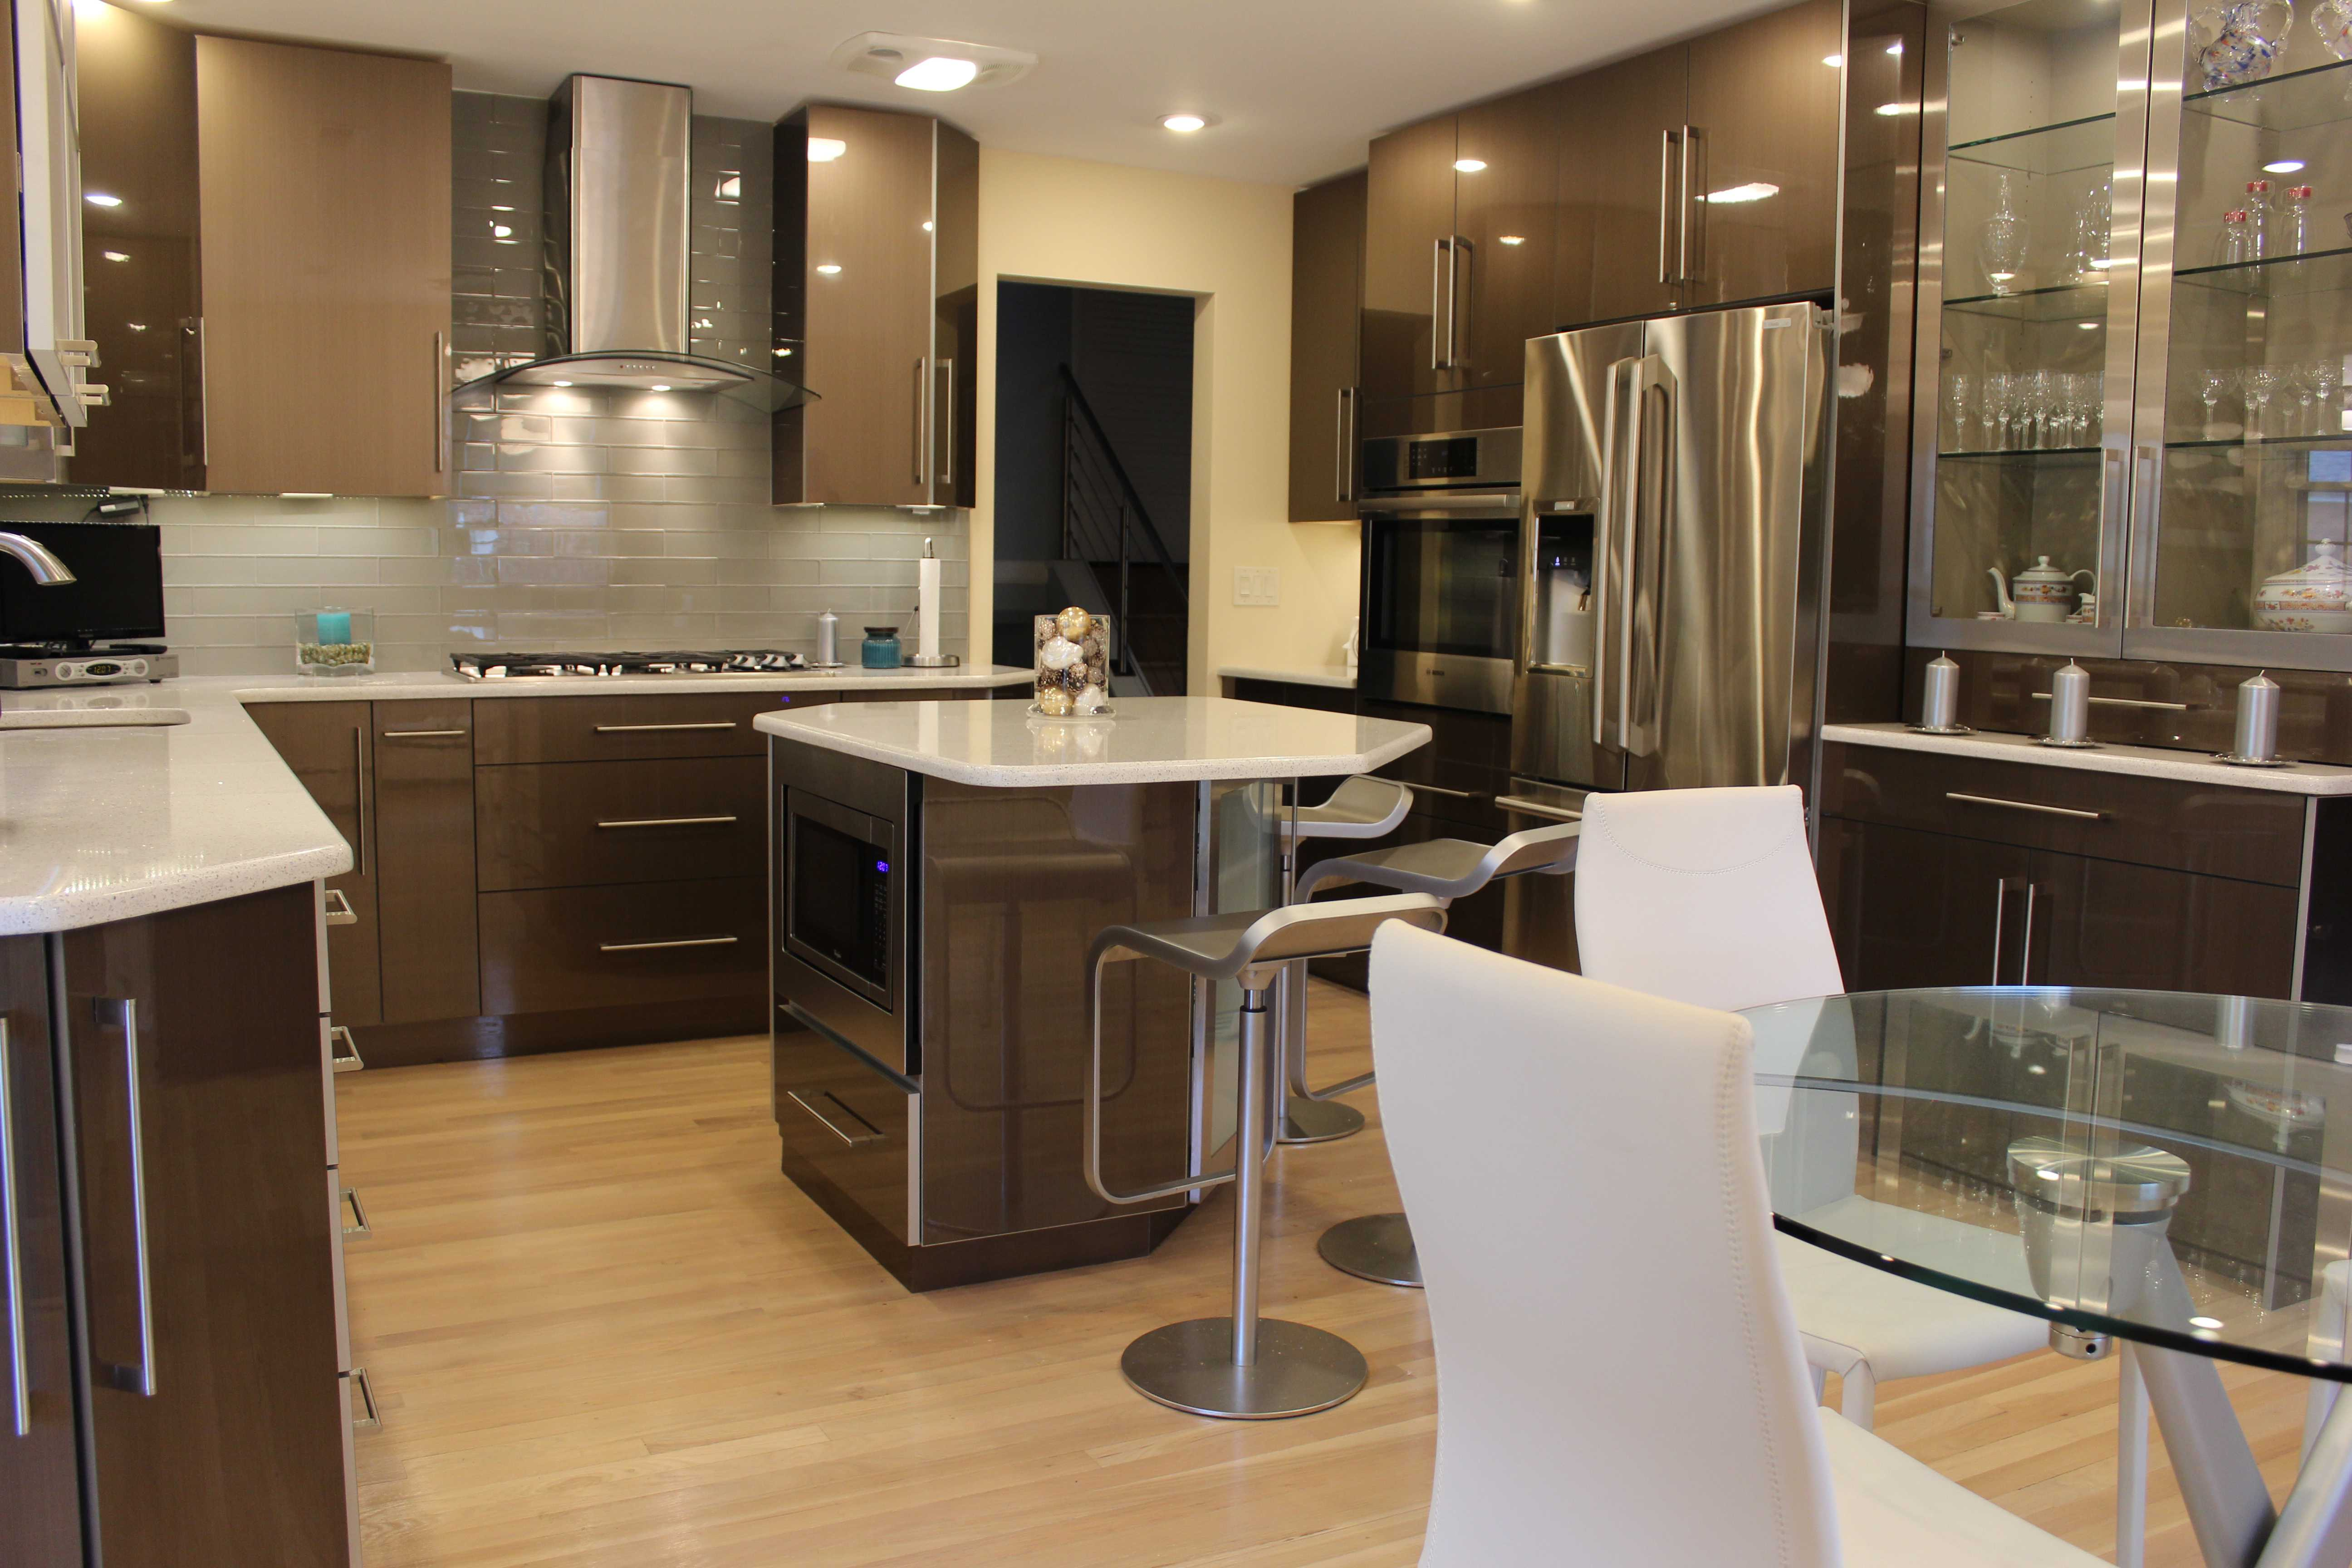 KITCHEN<br> Contempo Chic